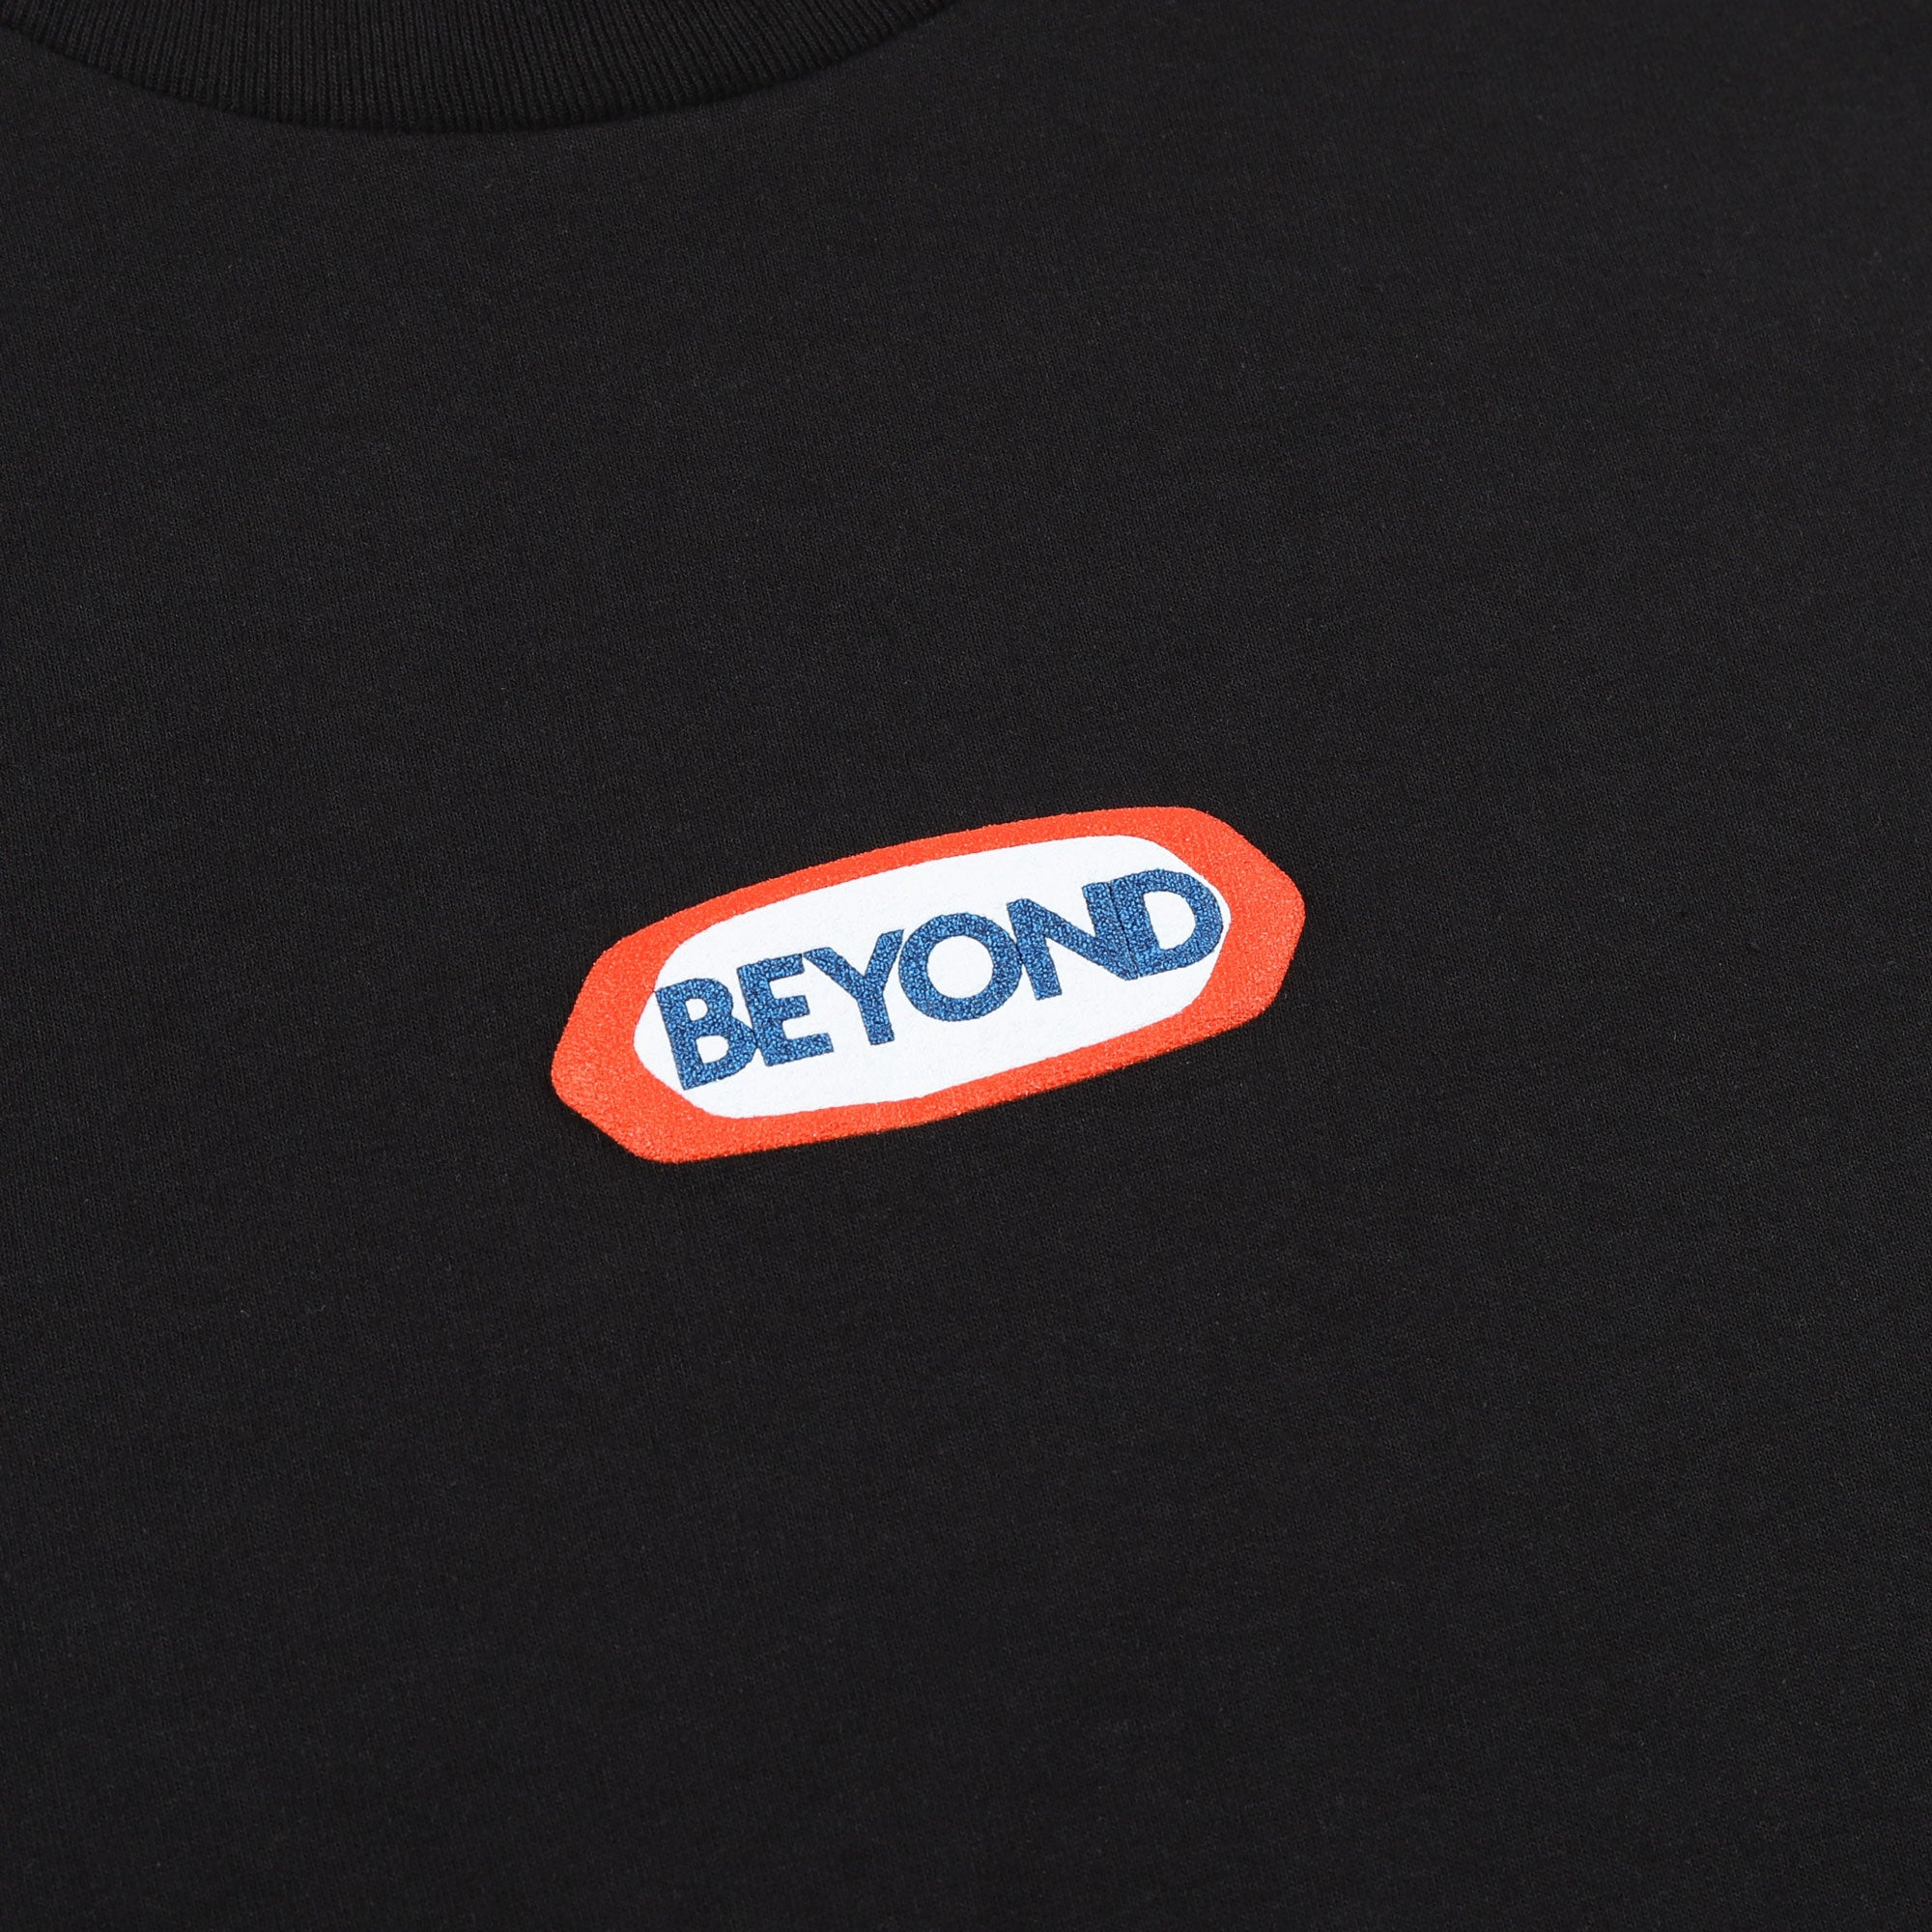 Beyond Cheddar Tee Product Photo #2